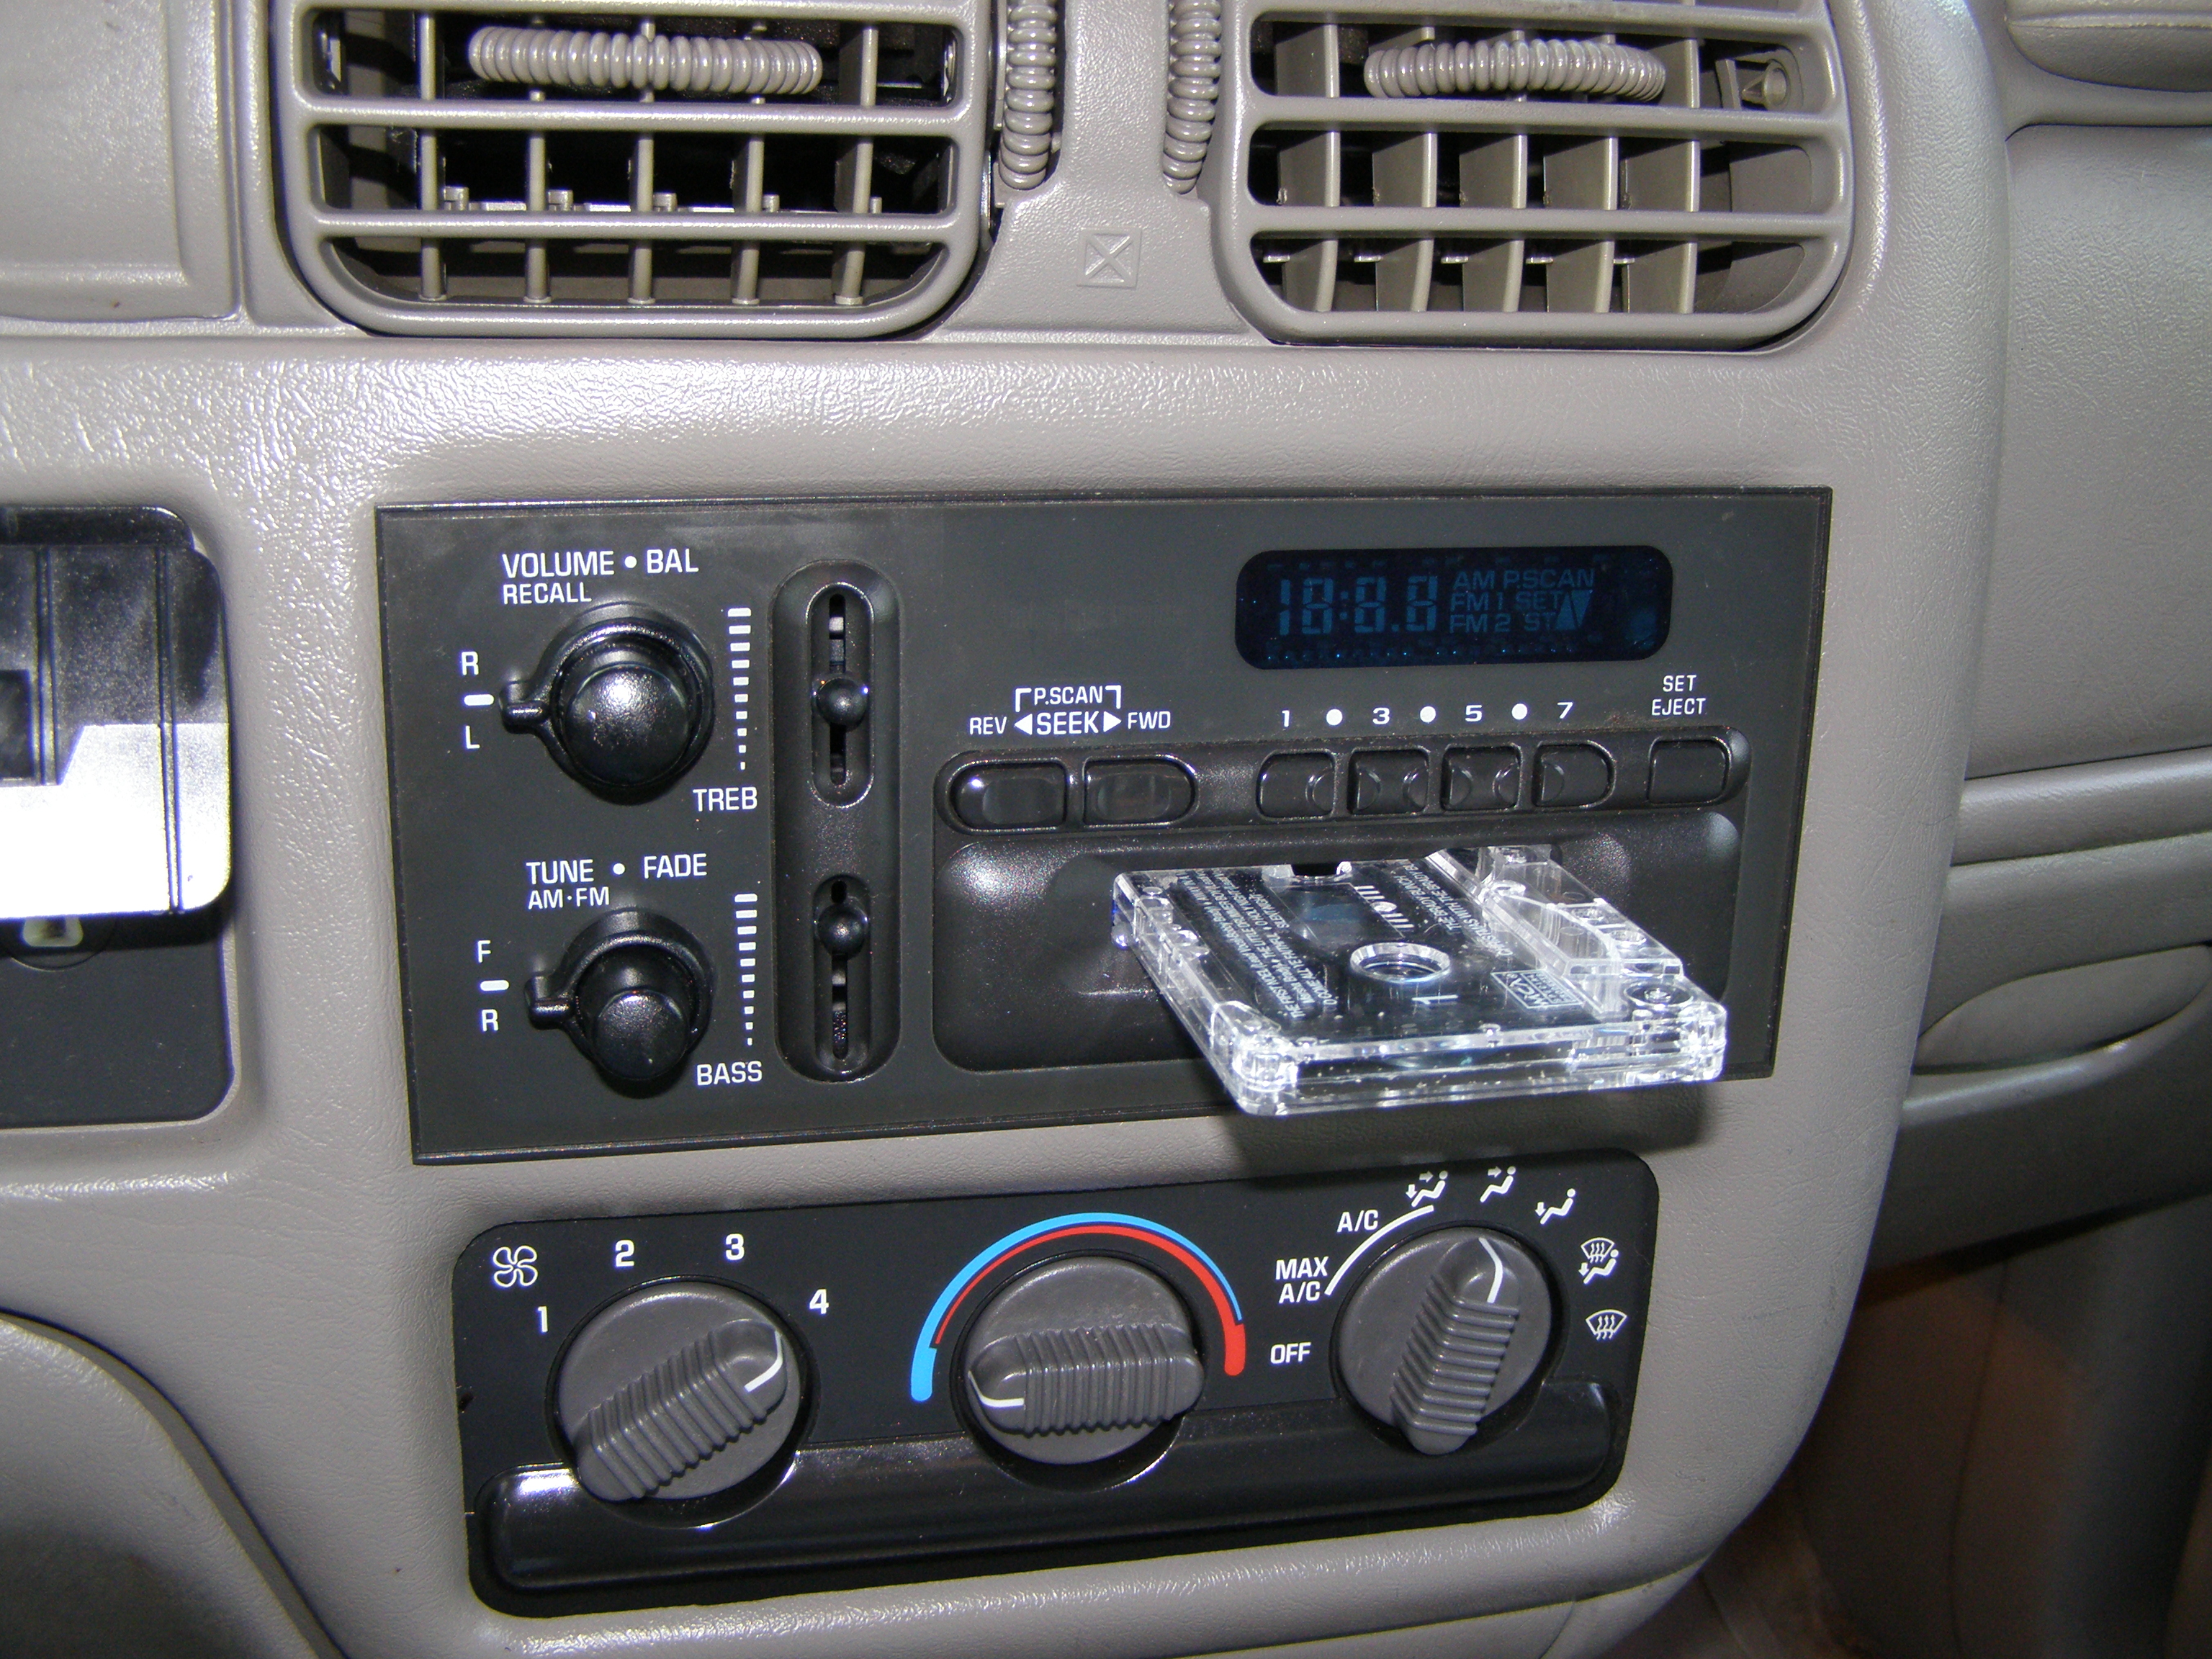 Car stereo stock radio fake-out